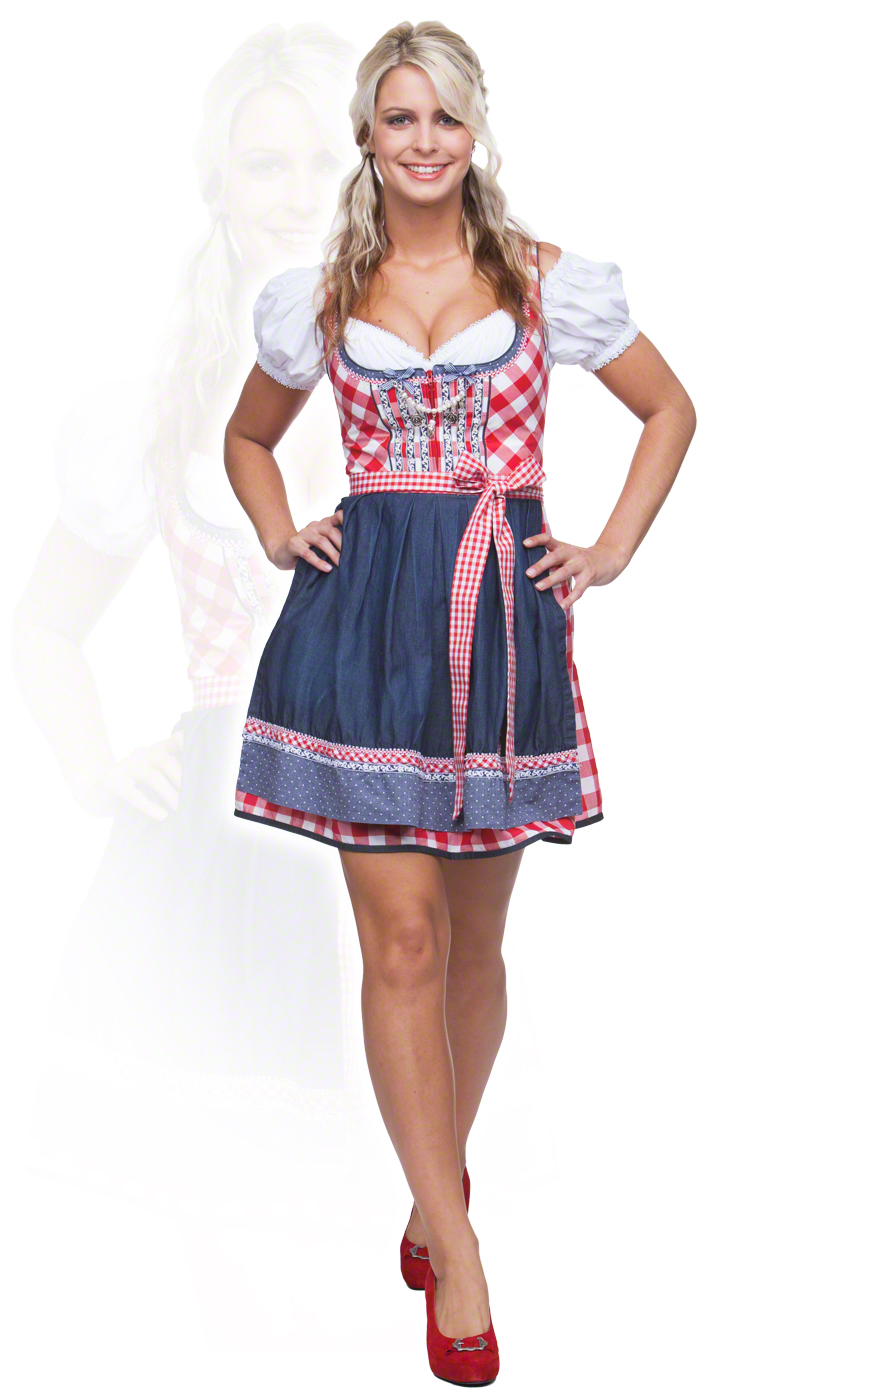 Oktoberfest fashion trends 2014 (for her) - Oktoberfest ...